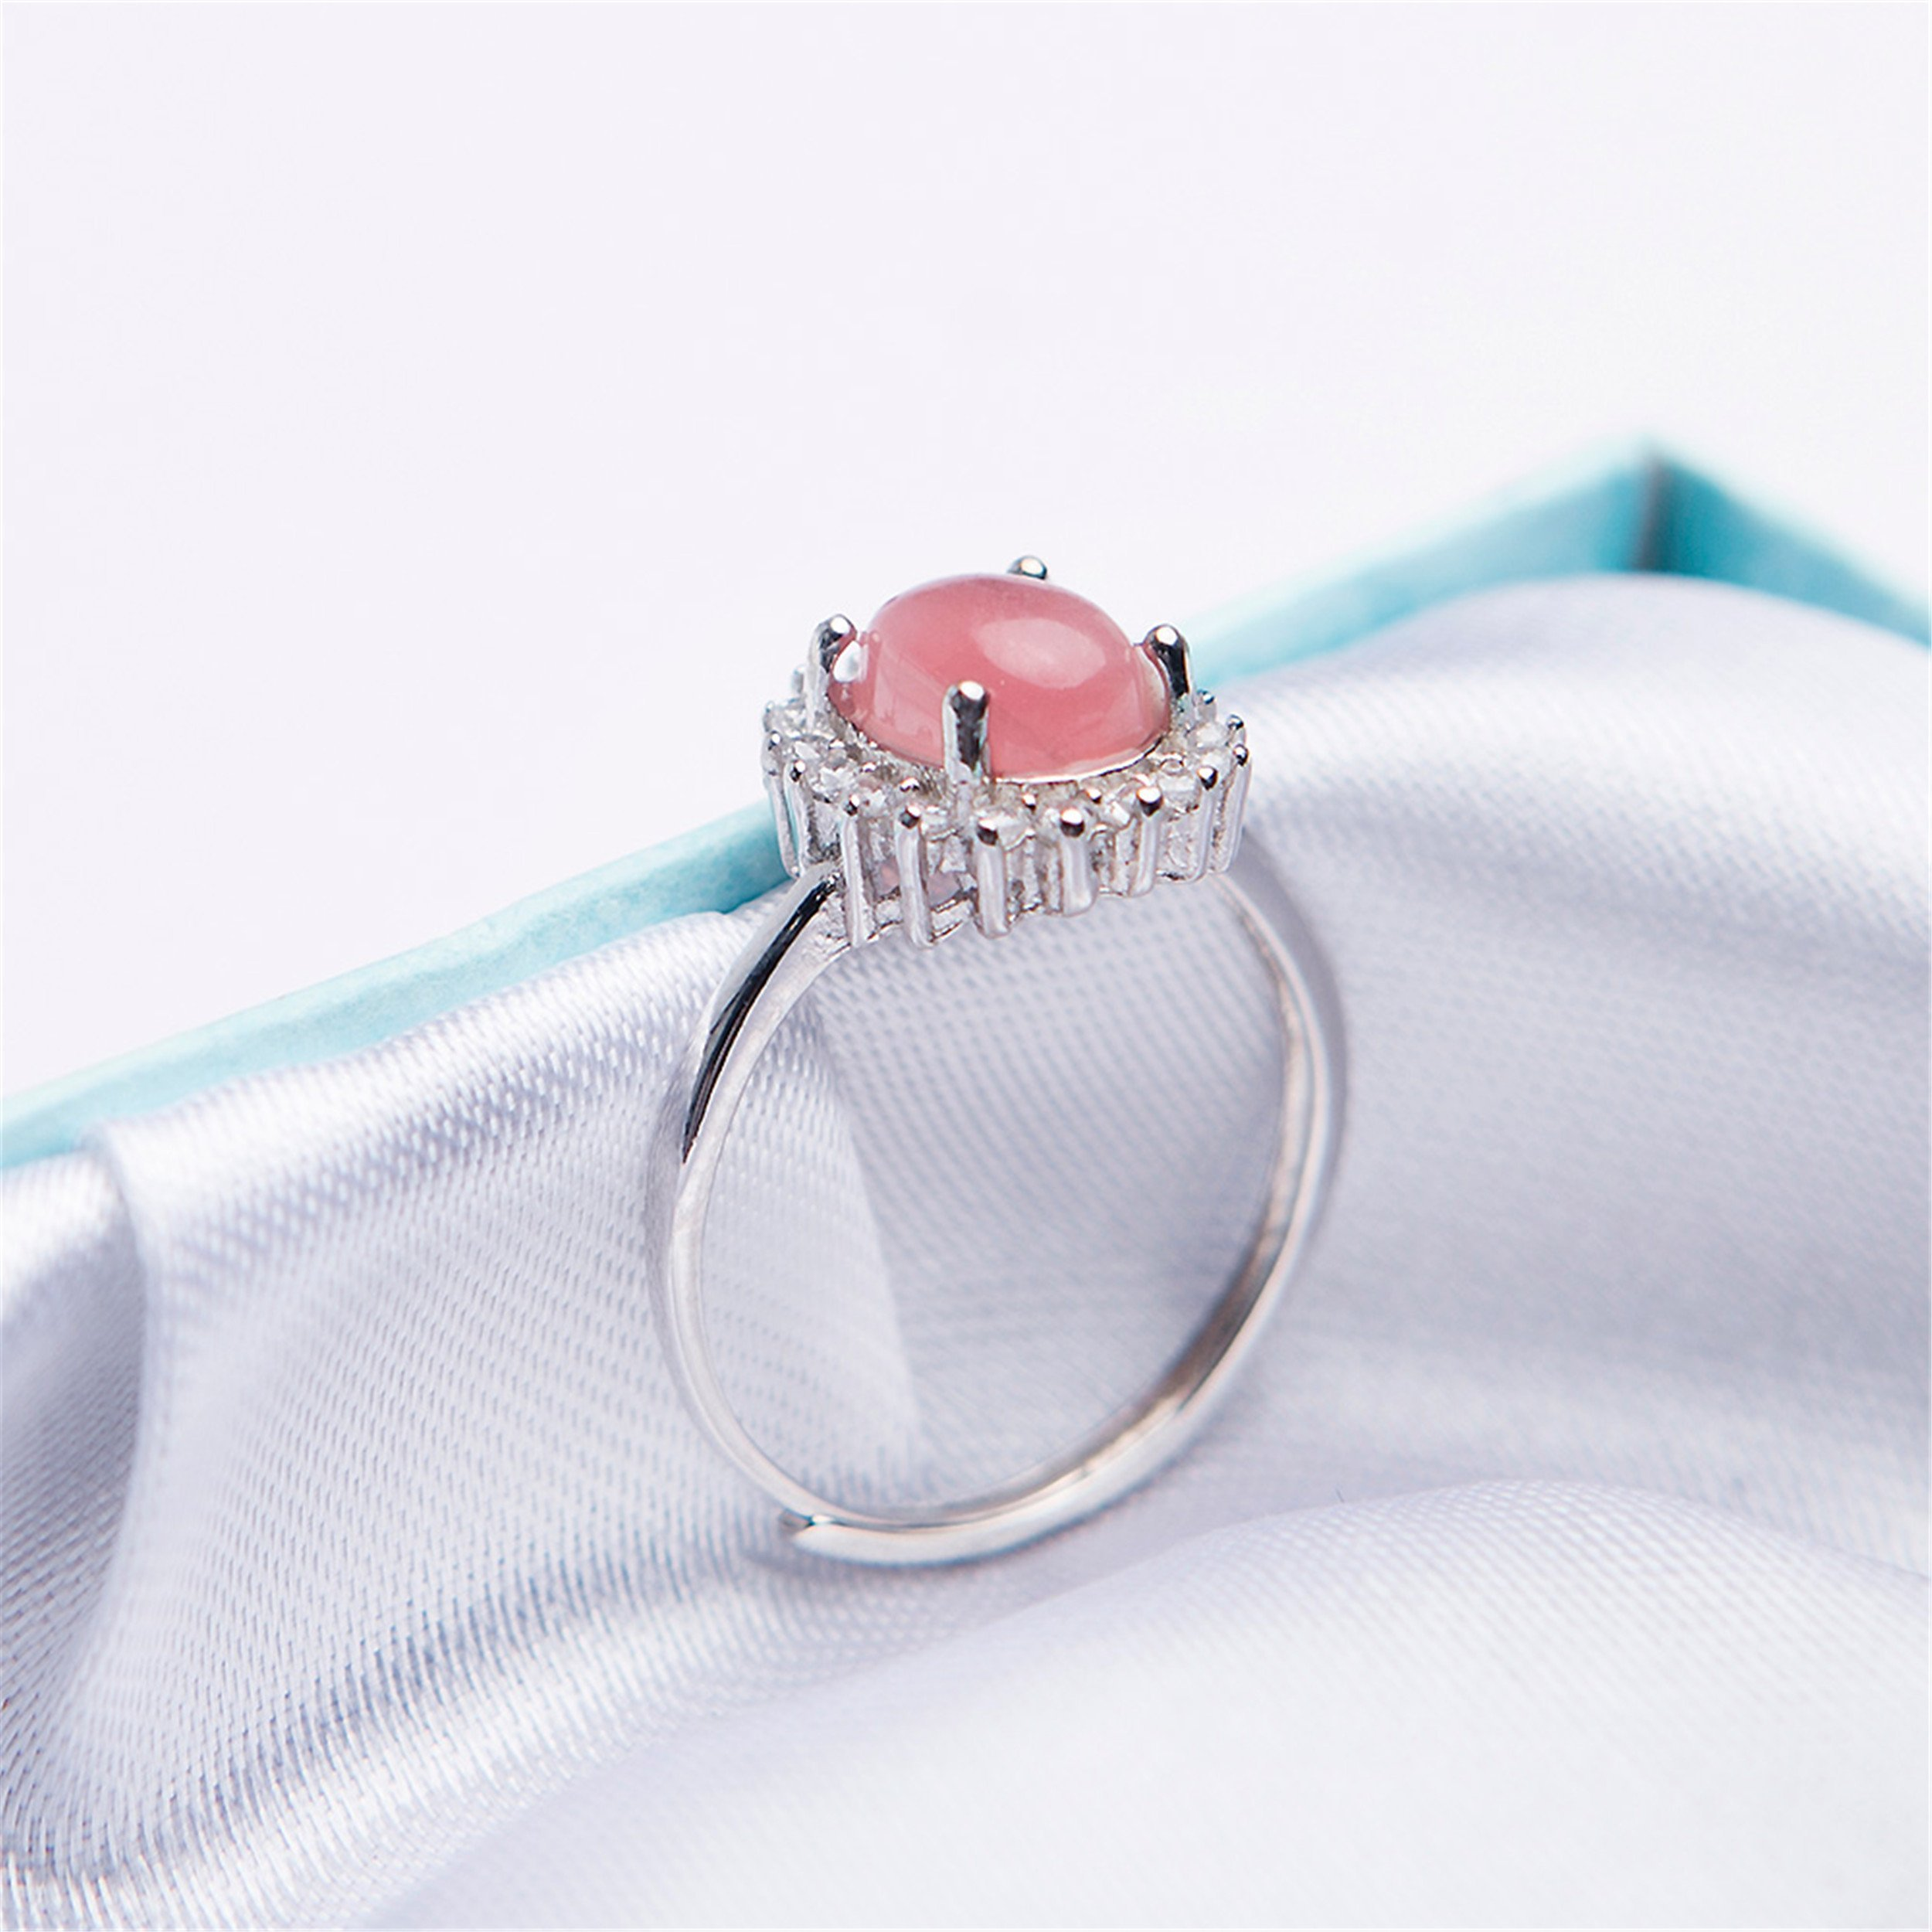 LiZiFang Natural Red Rhodochrosite Gemstone Crystal Fashion Silver Wedding Rings Adjustable Size by LiZiFang (Image #3)